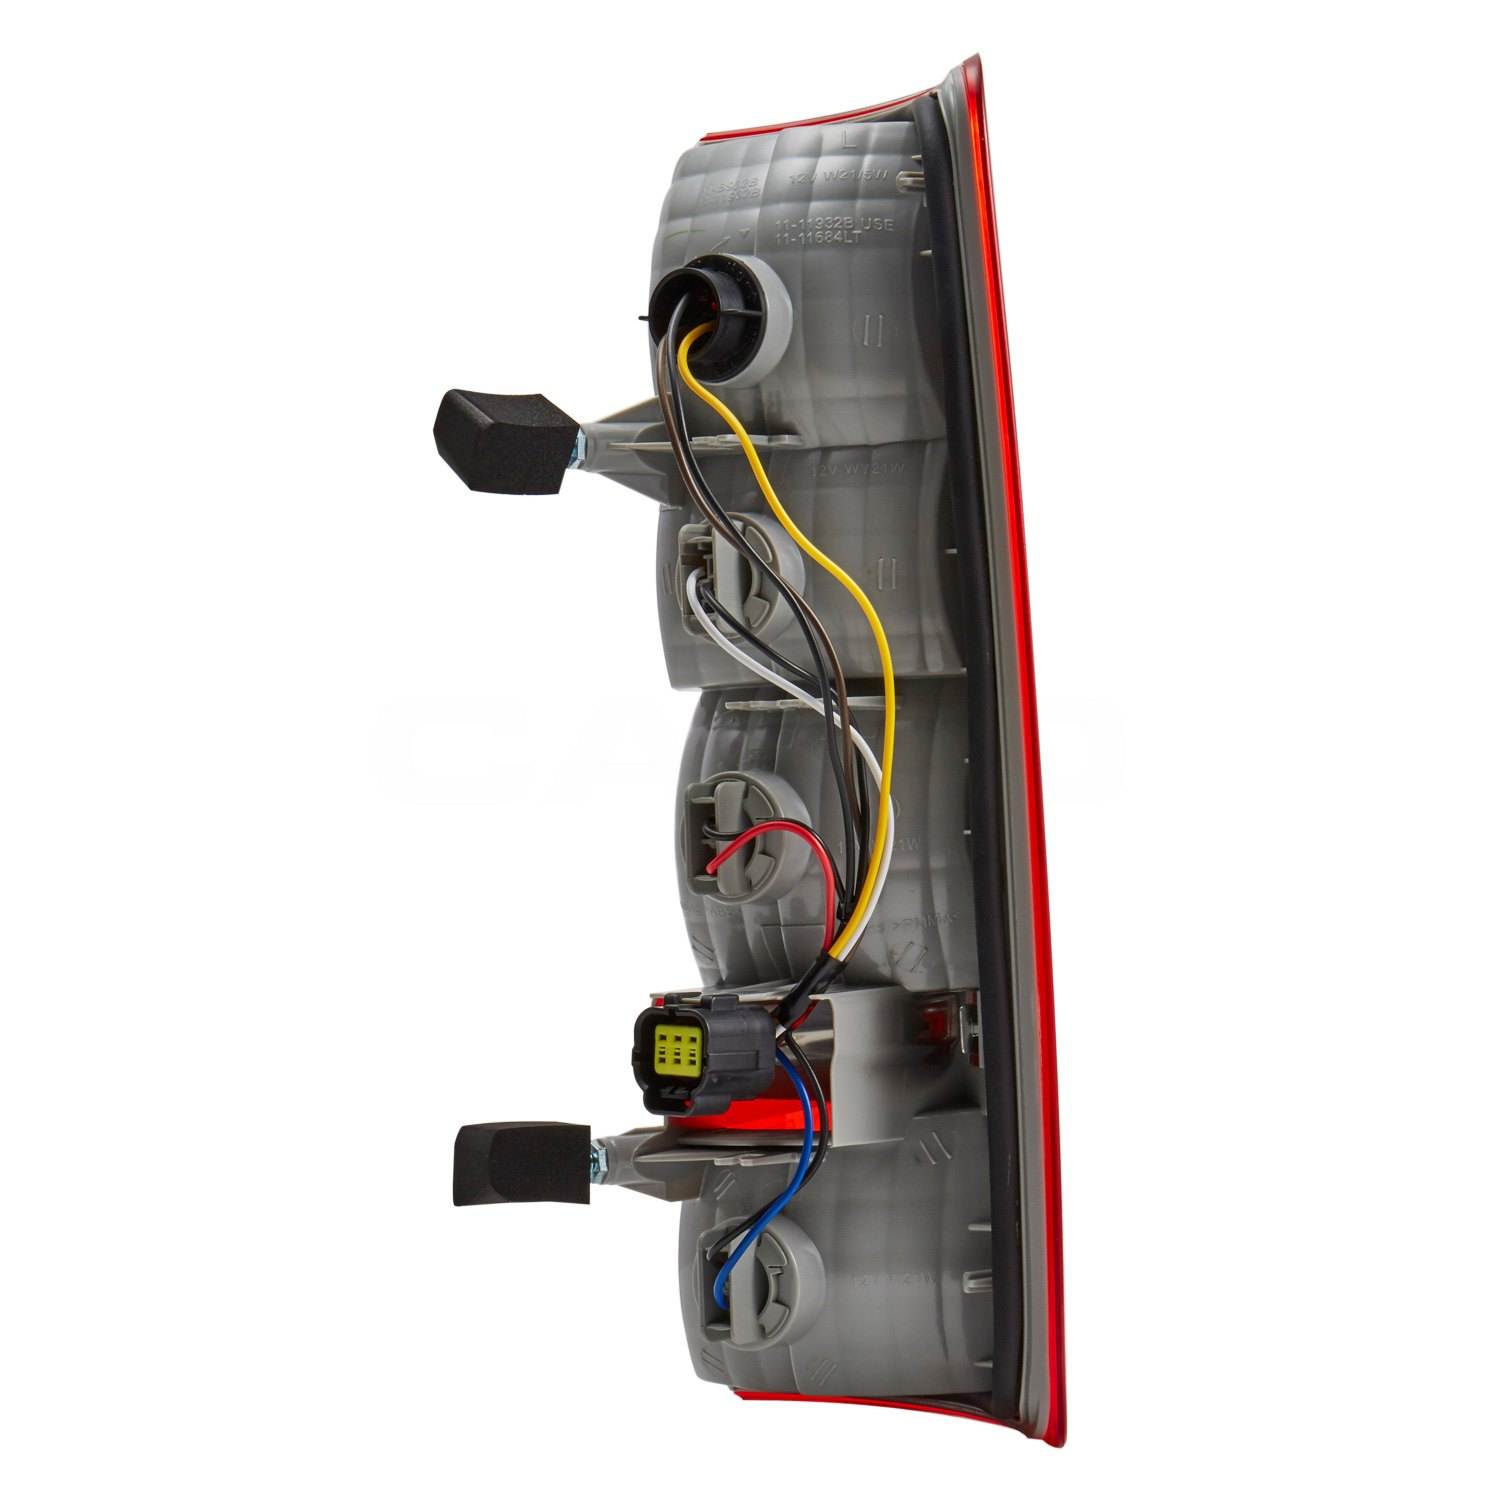 Ford Transit Connect 2010-2014 Replacement Tail Light